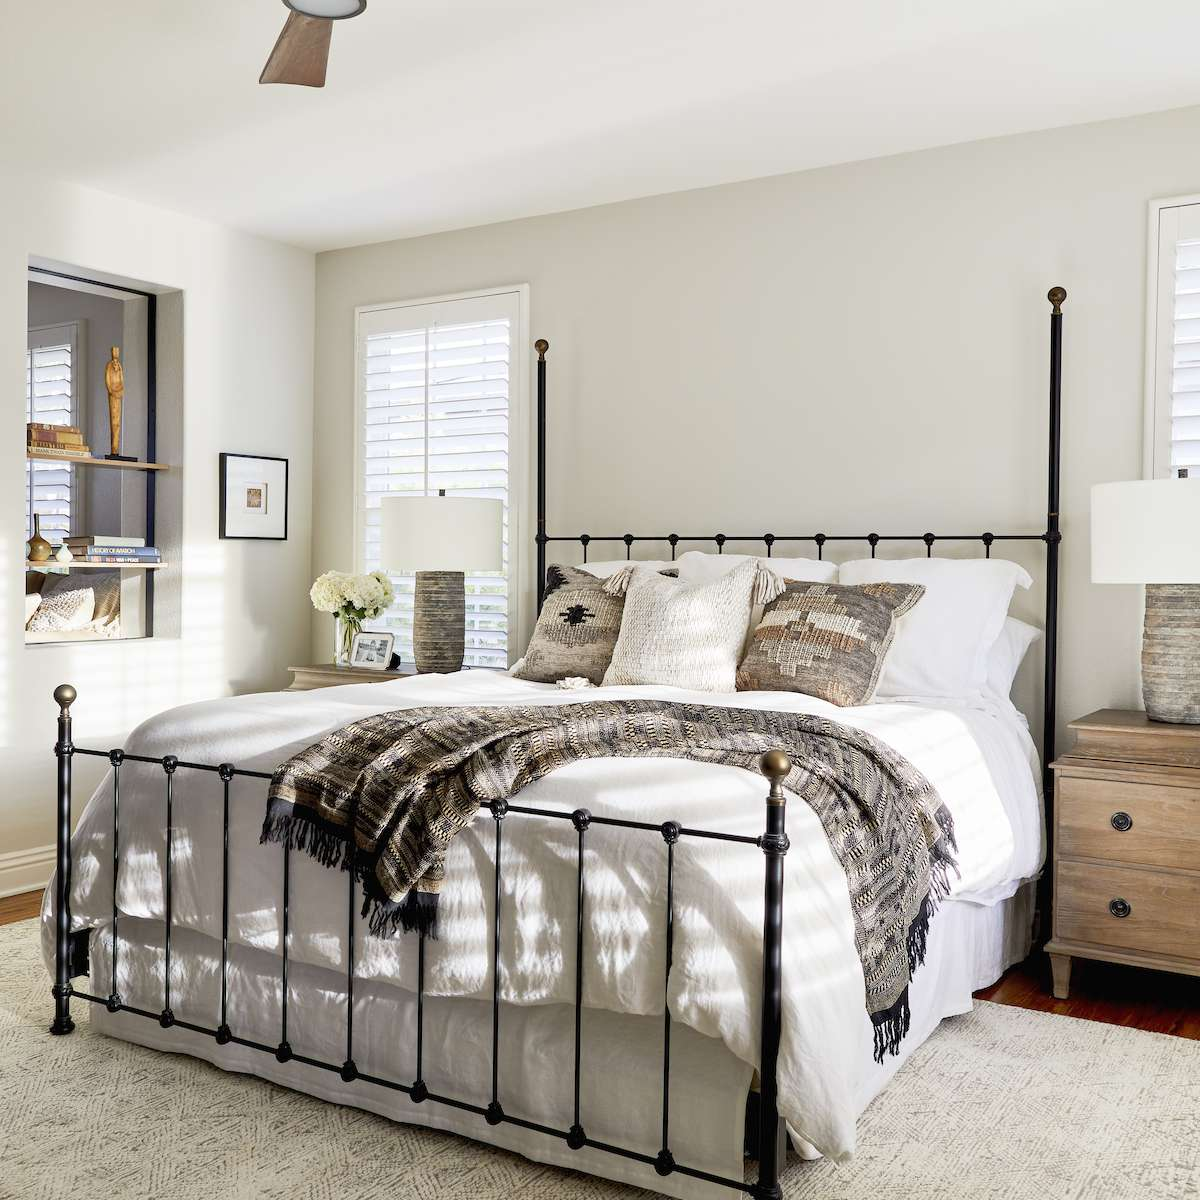 Bedroom with linen shades